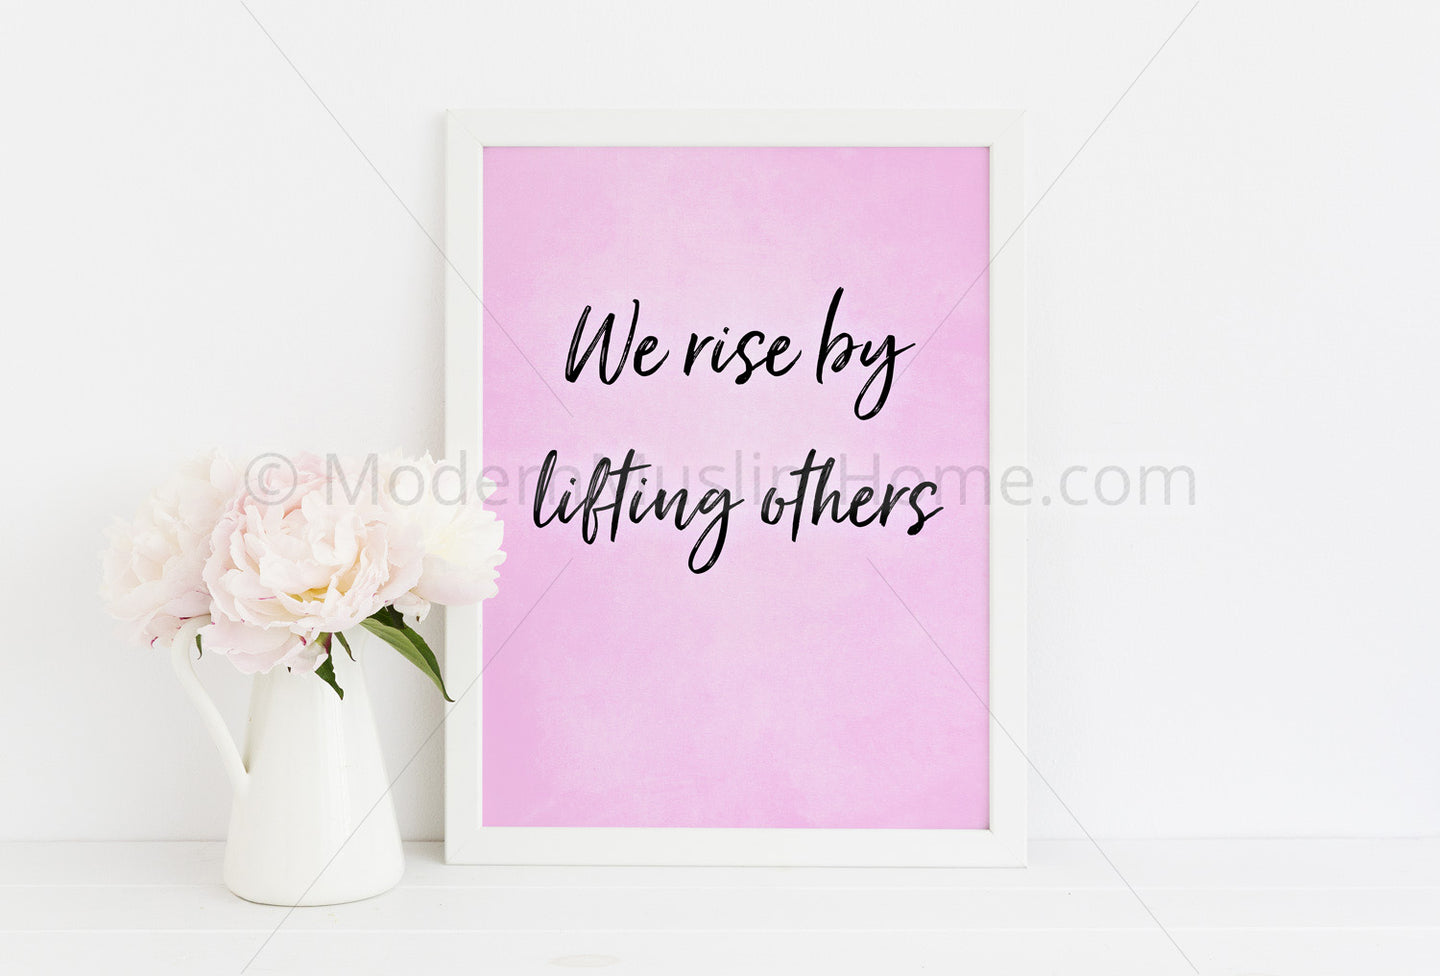 We Rise by Lifting Others [Instant Download]